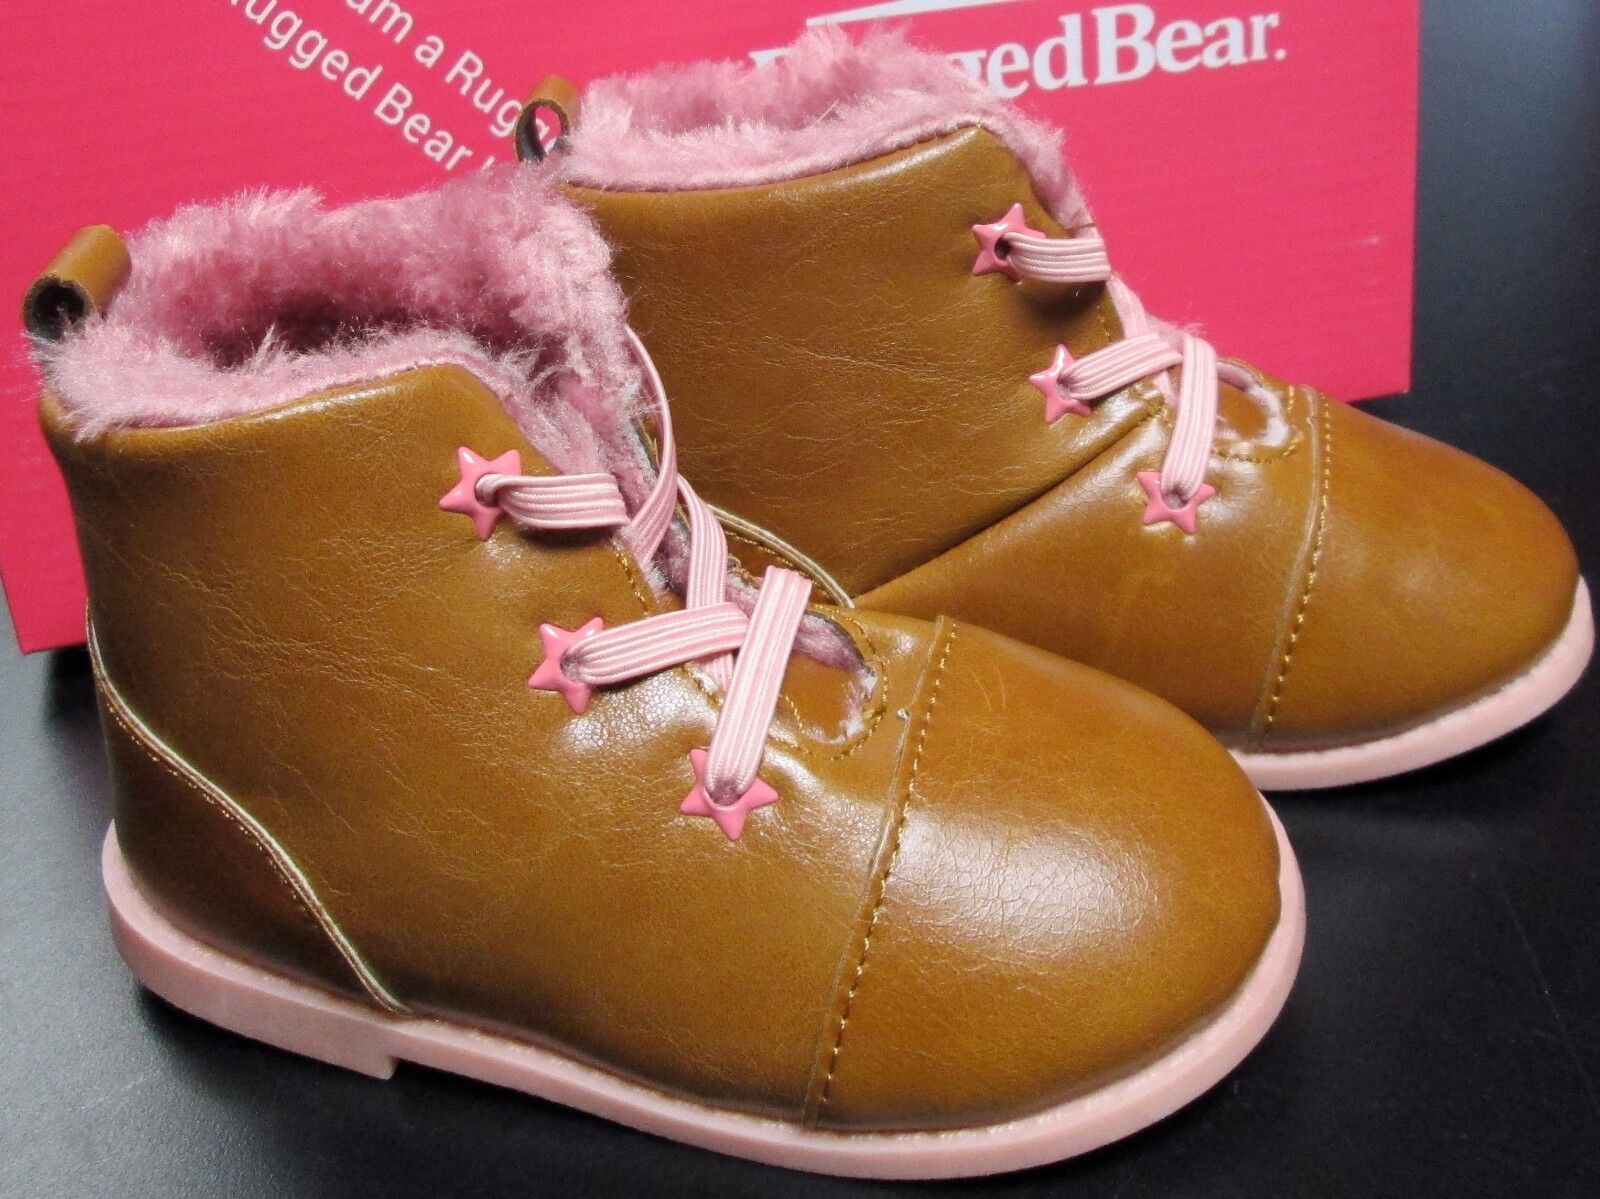 NEW BABY GIRLS RUGGED BEAR BROWN BOOTS W/PINK LACES & FUR SZ 6